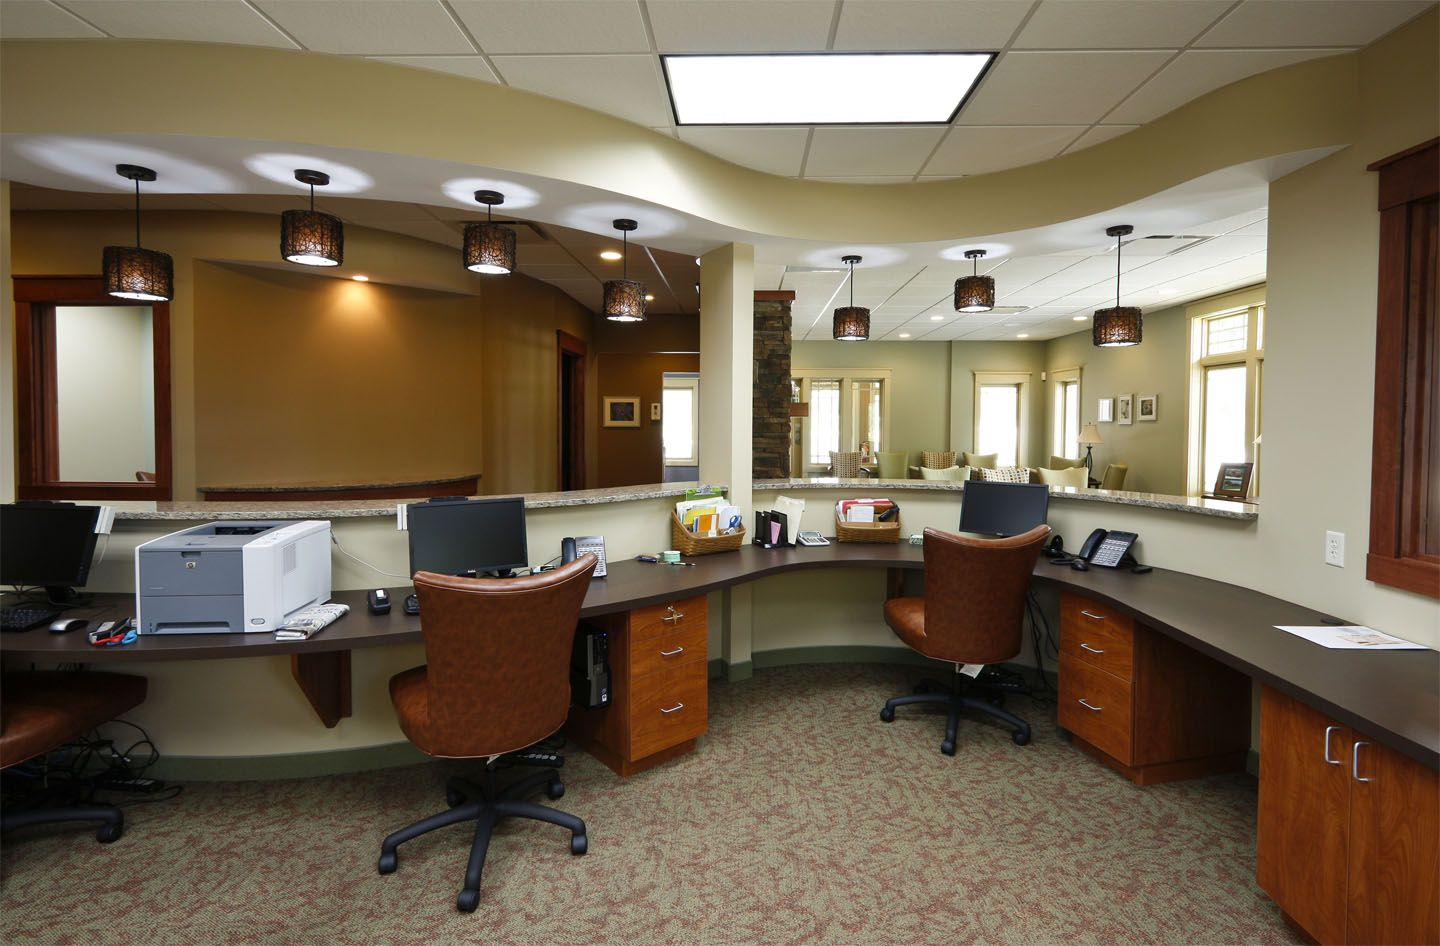 Prime 17 Best Images About Office On Pinterest Home Office Design Largest Home Design Picture Inspirations Pitcheantrous